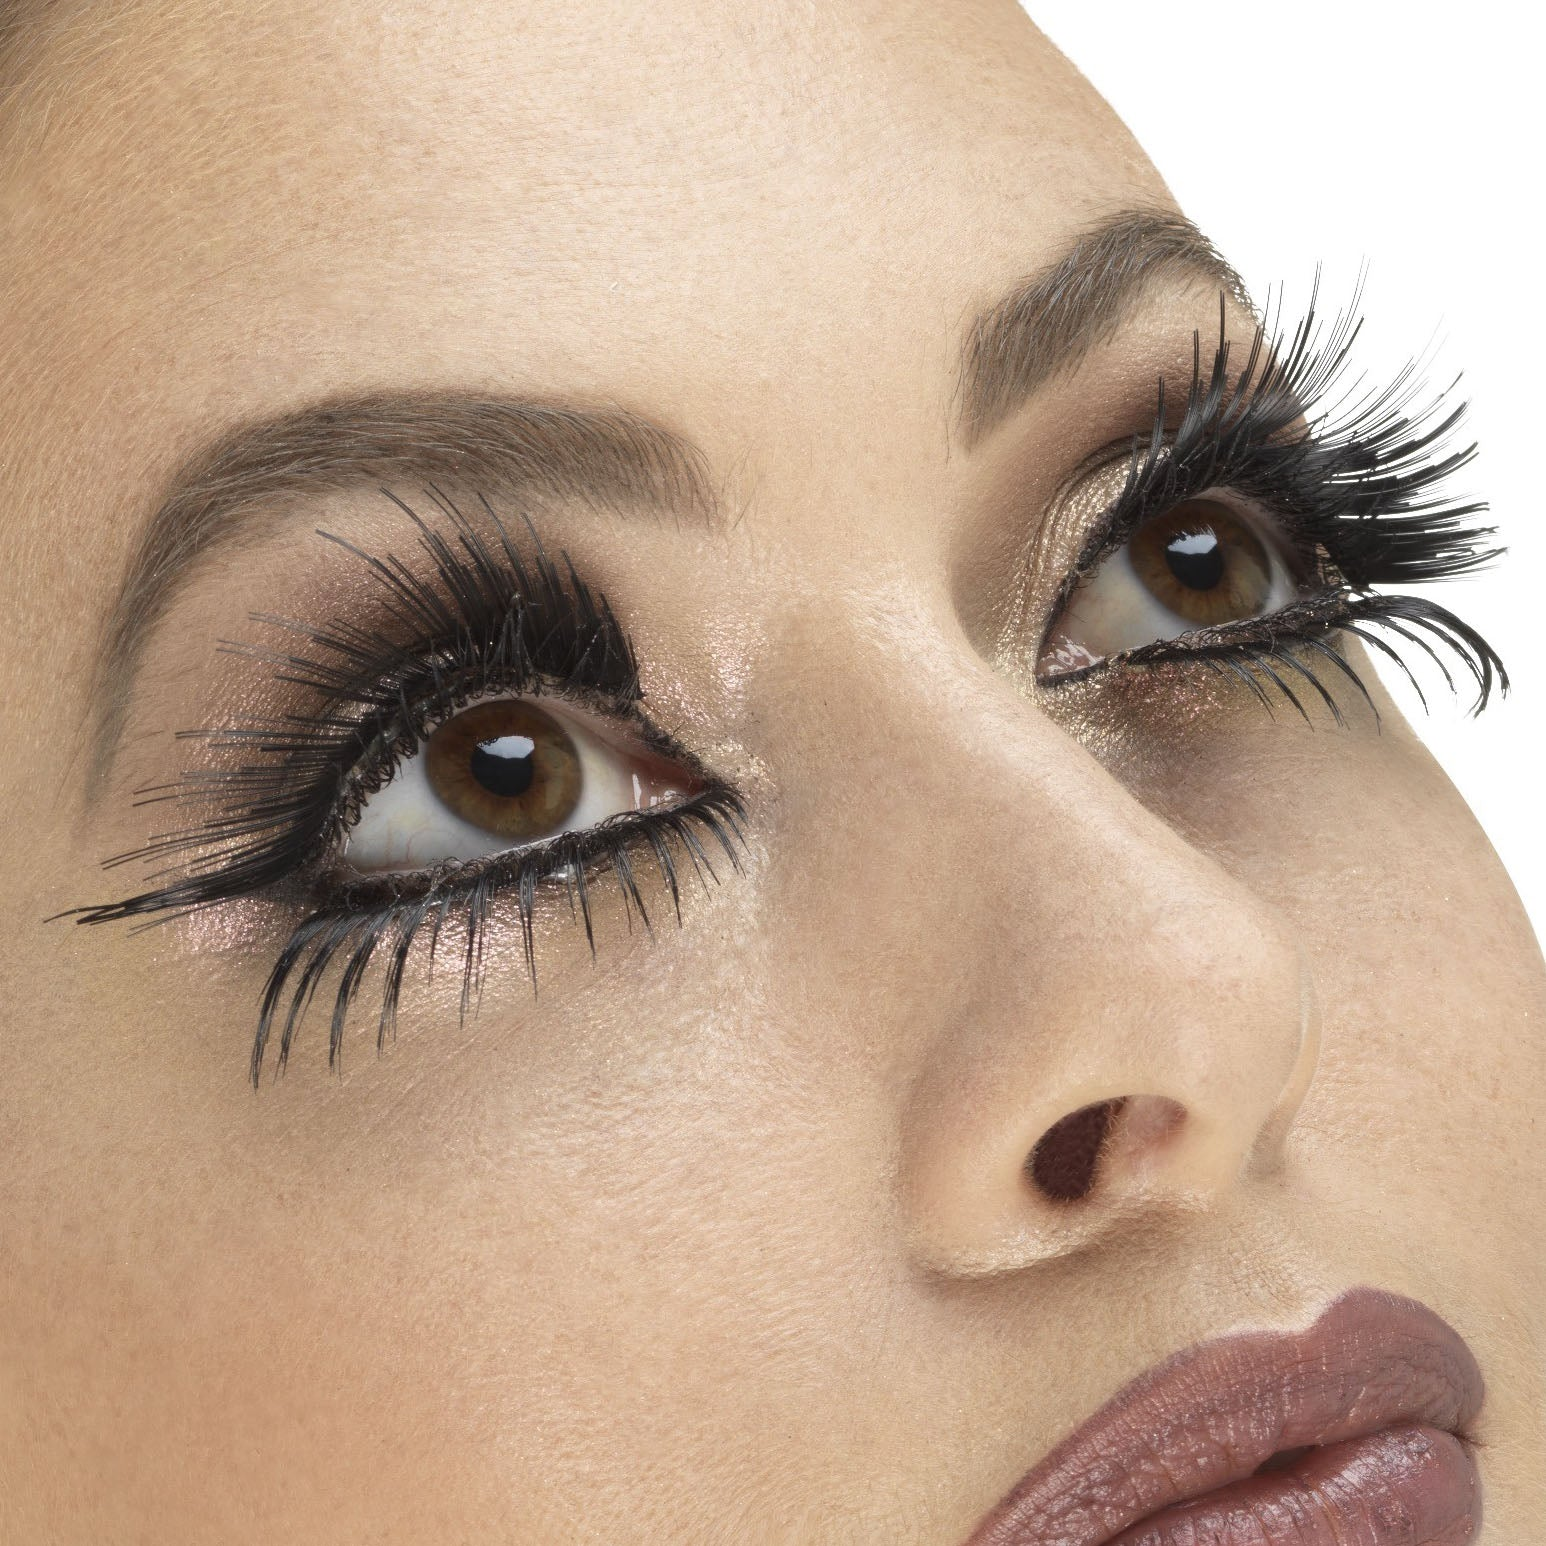 Fever False Top & Bottom Eyelashes - Winged Black